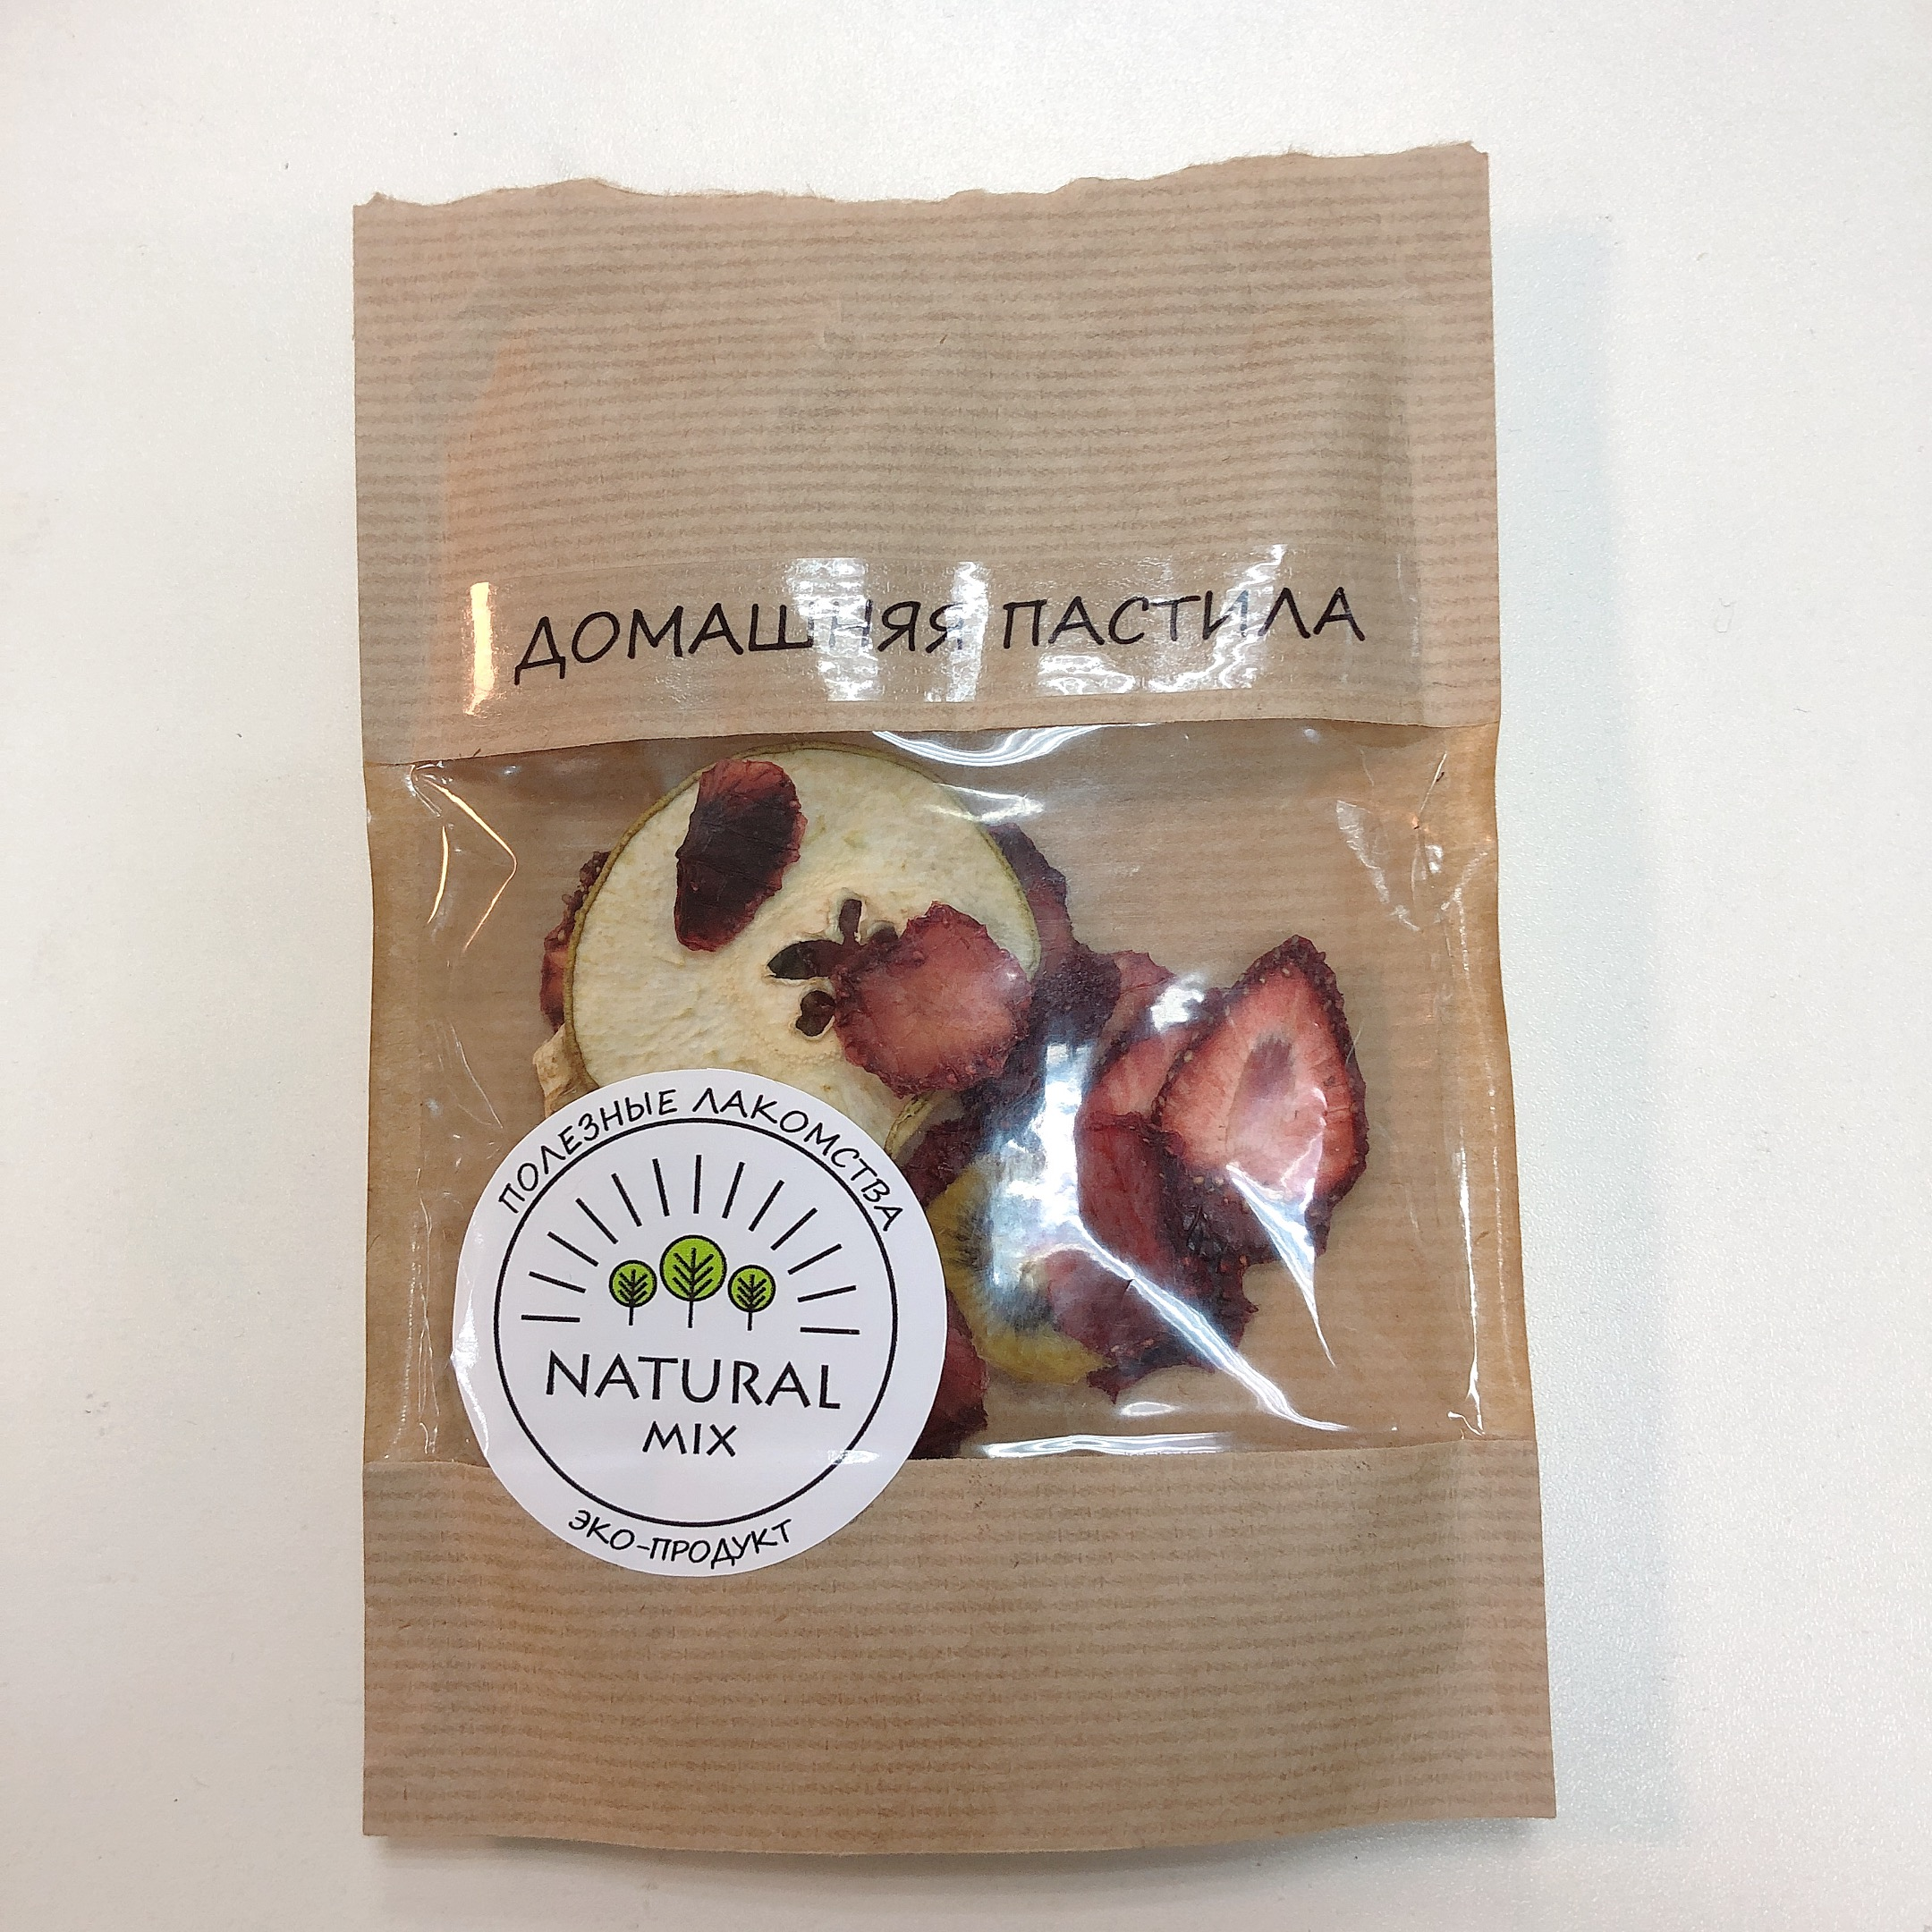 Supplying natural fruit slices and vegetable slices without preservatives and additives